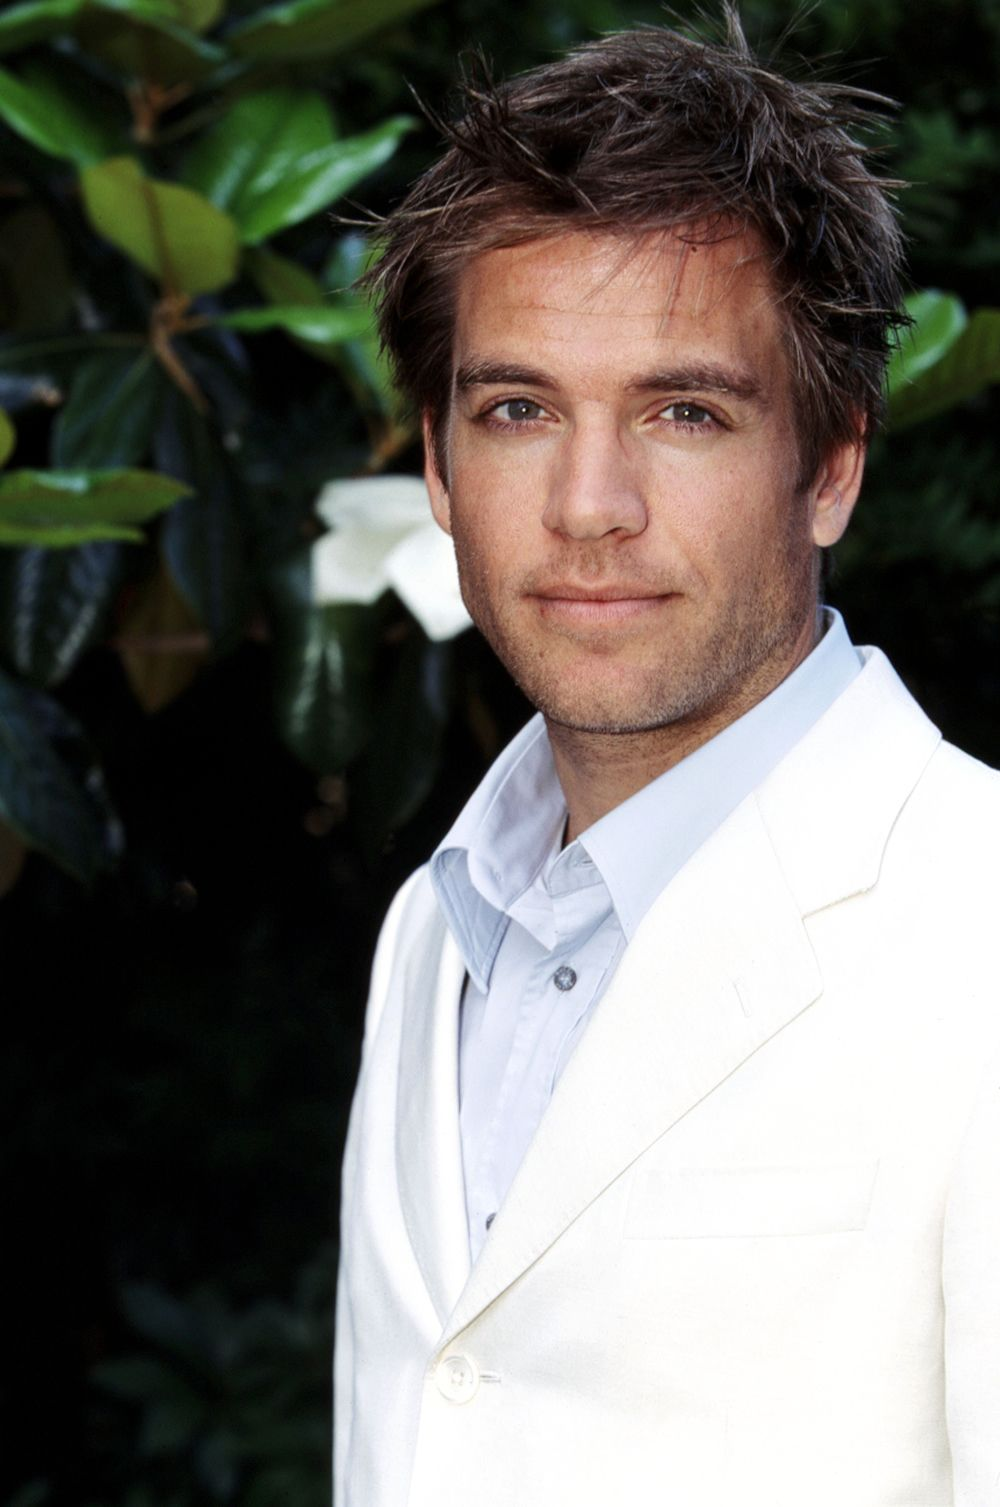 Michael weatherly candidate for jay pinterest michael